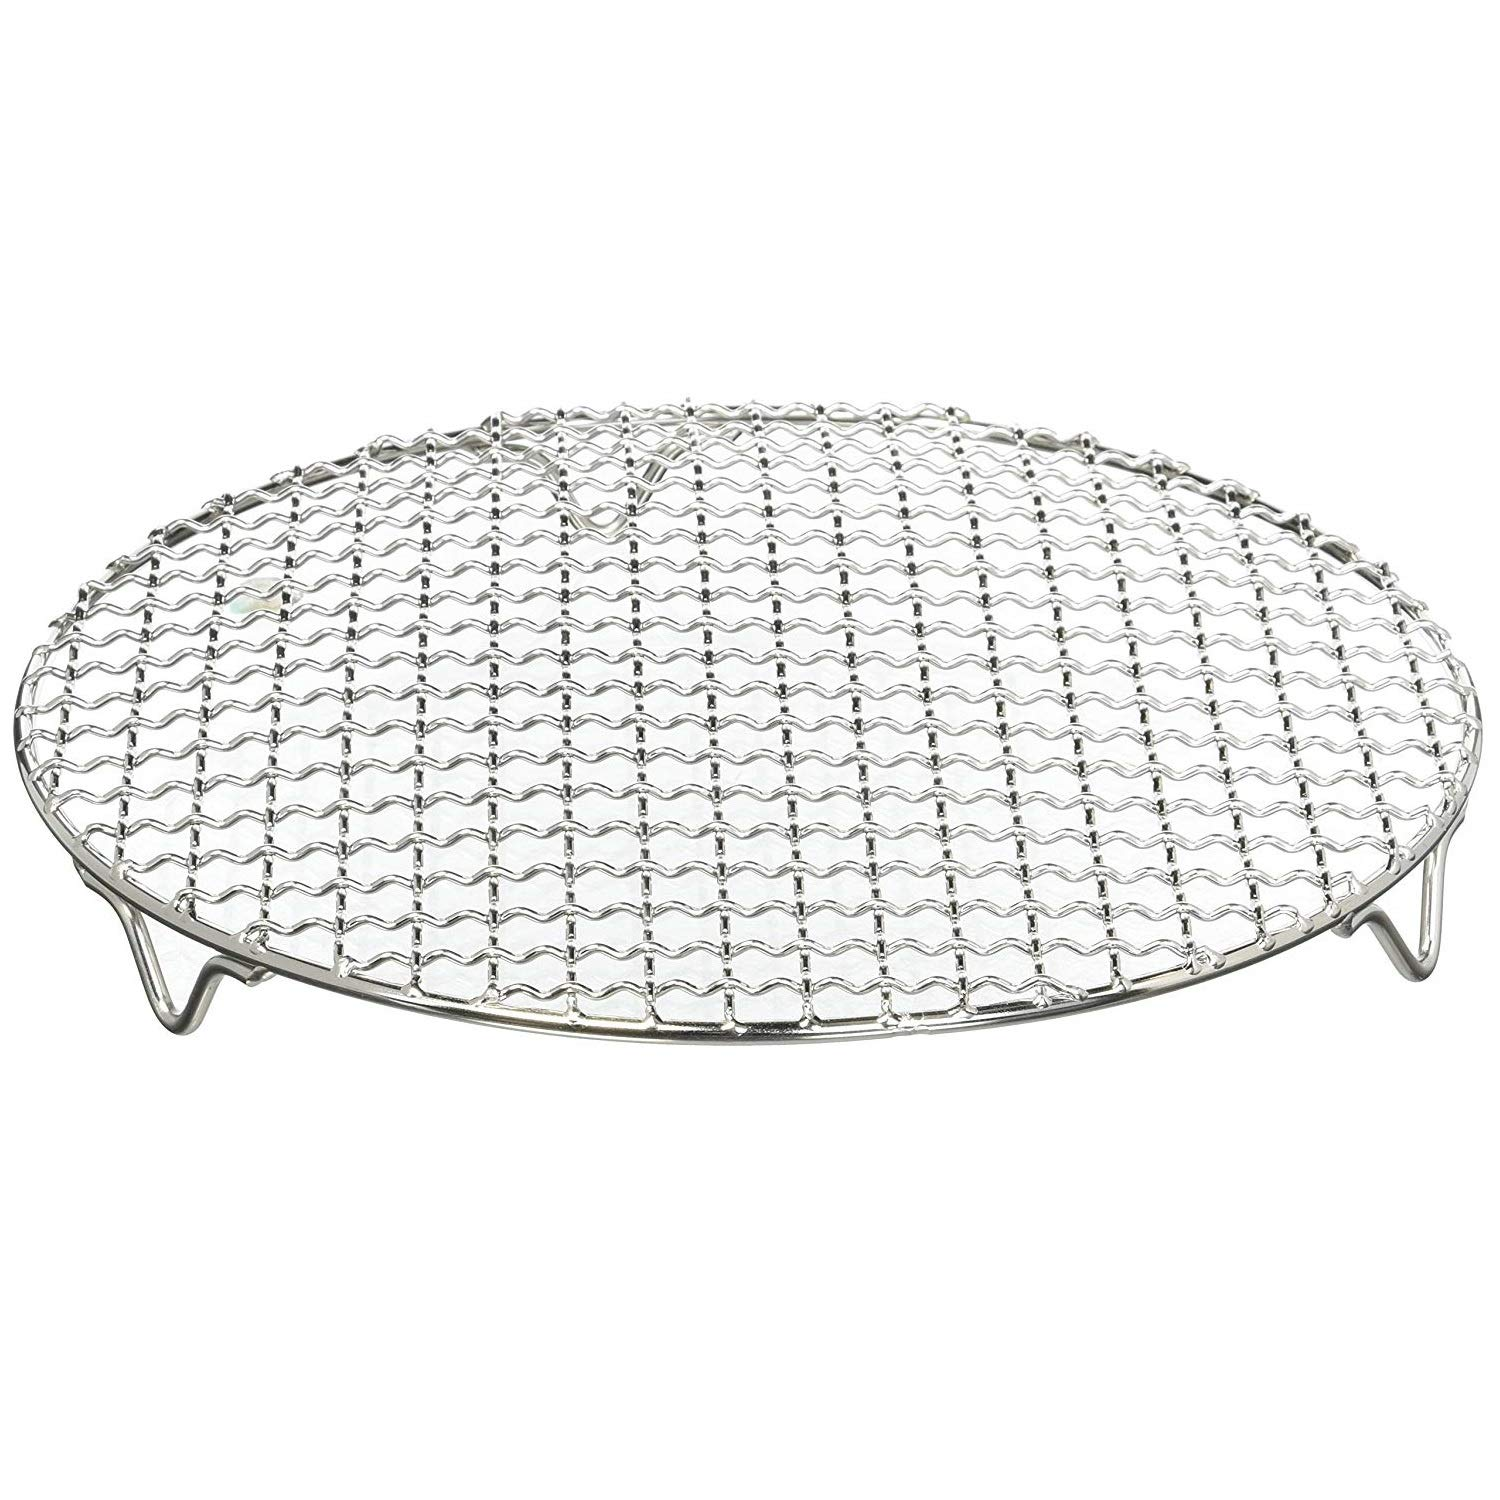 Chris-Wang 1Pack Multi-Purpose Round Stainless Steel Cross Wire Steaming Cooling Barbecue Rack /Carbon Baking Net/Grill /Pan Grate with Legs(11Inch Dia)